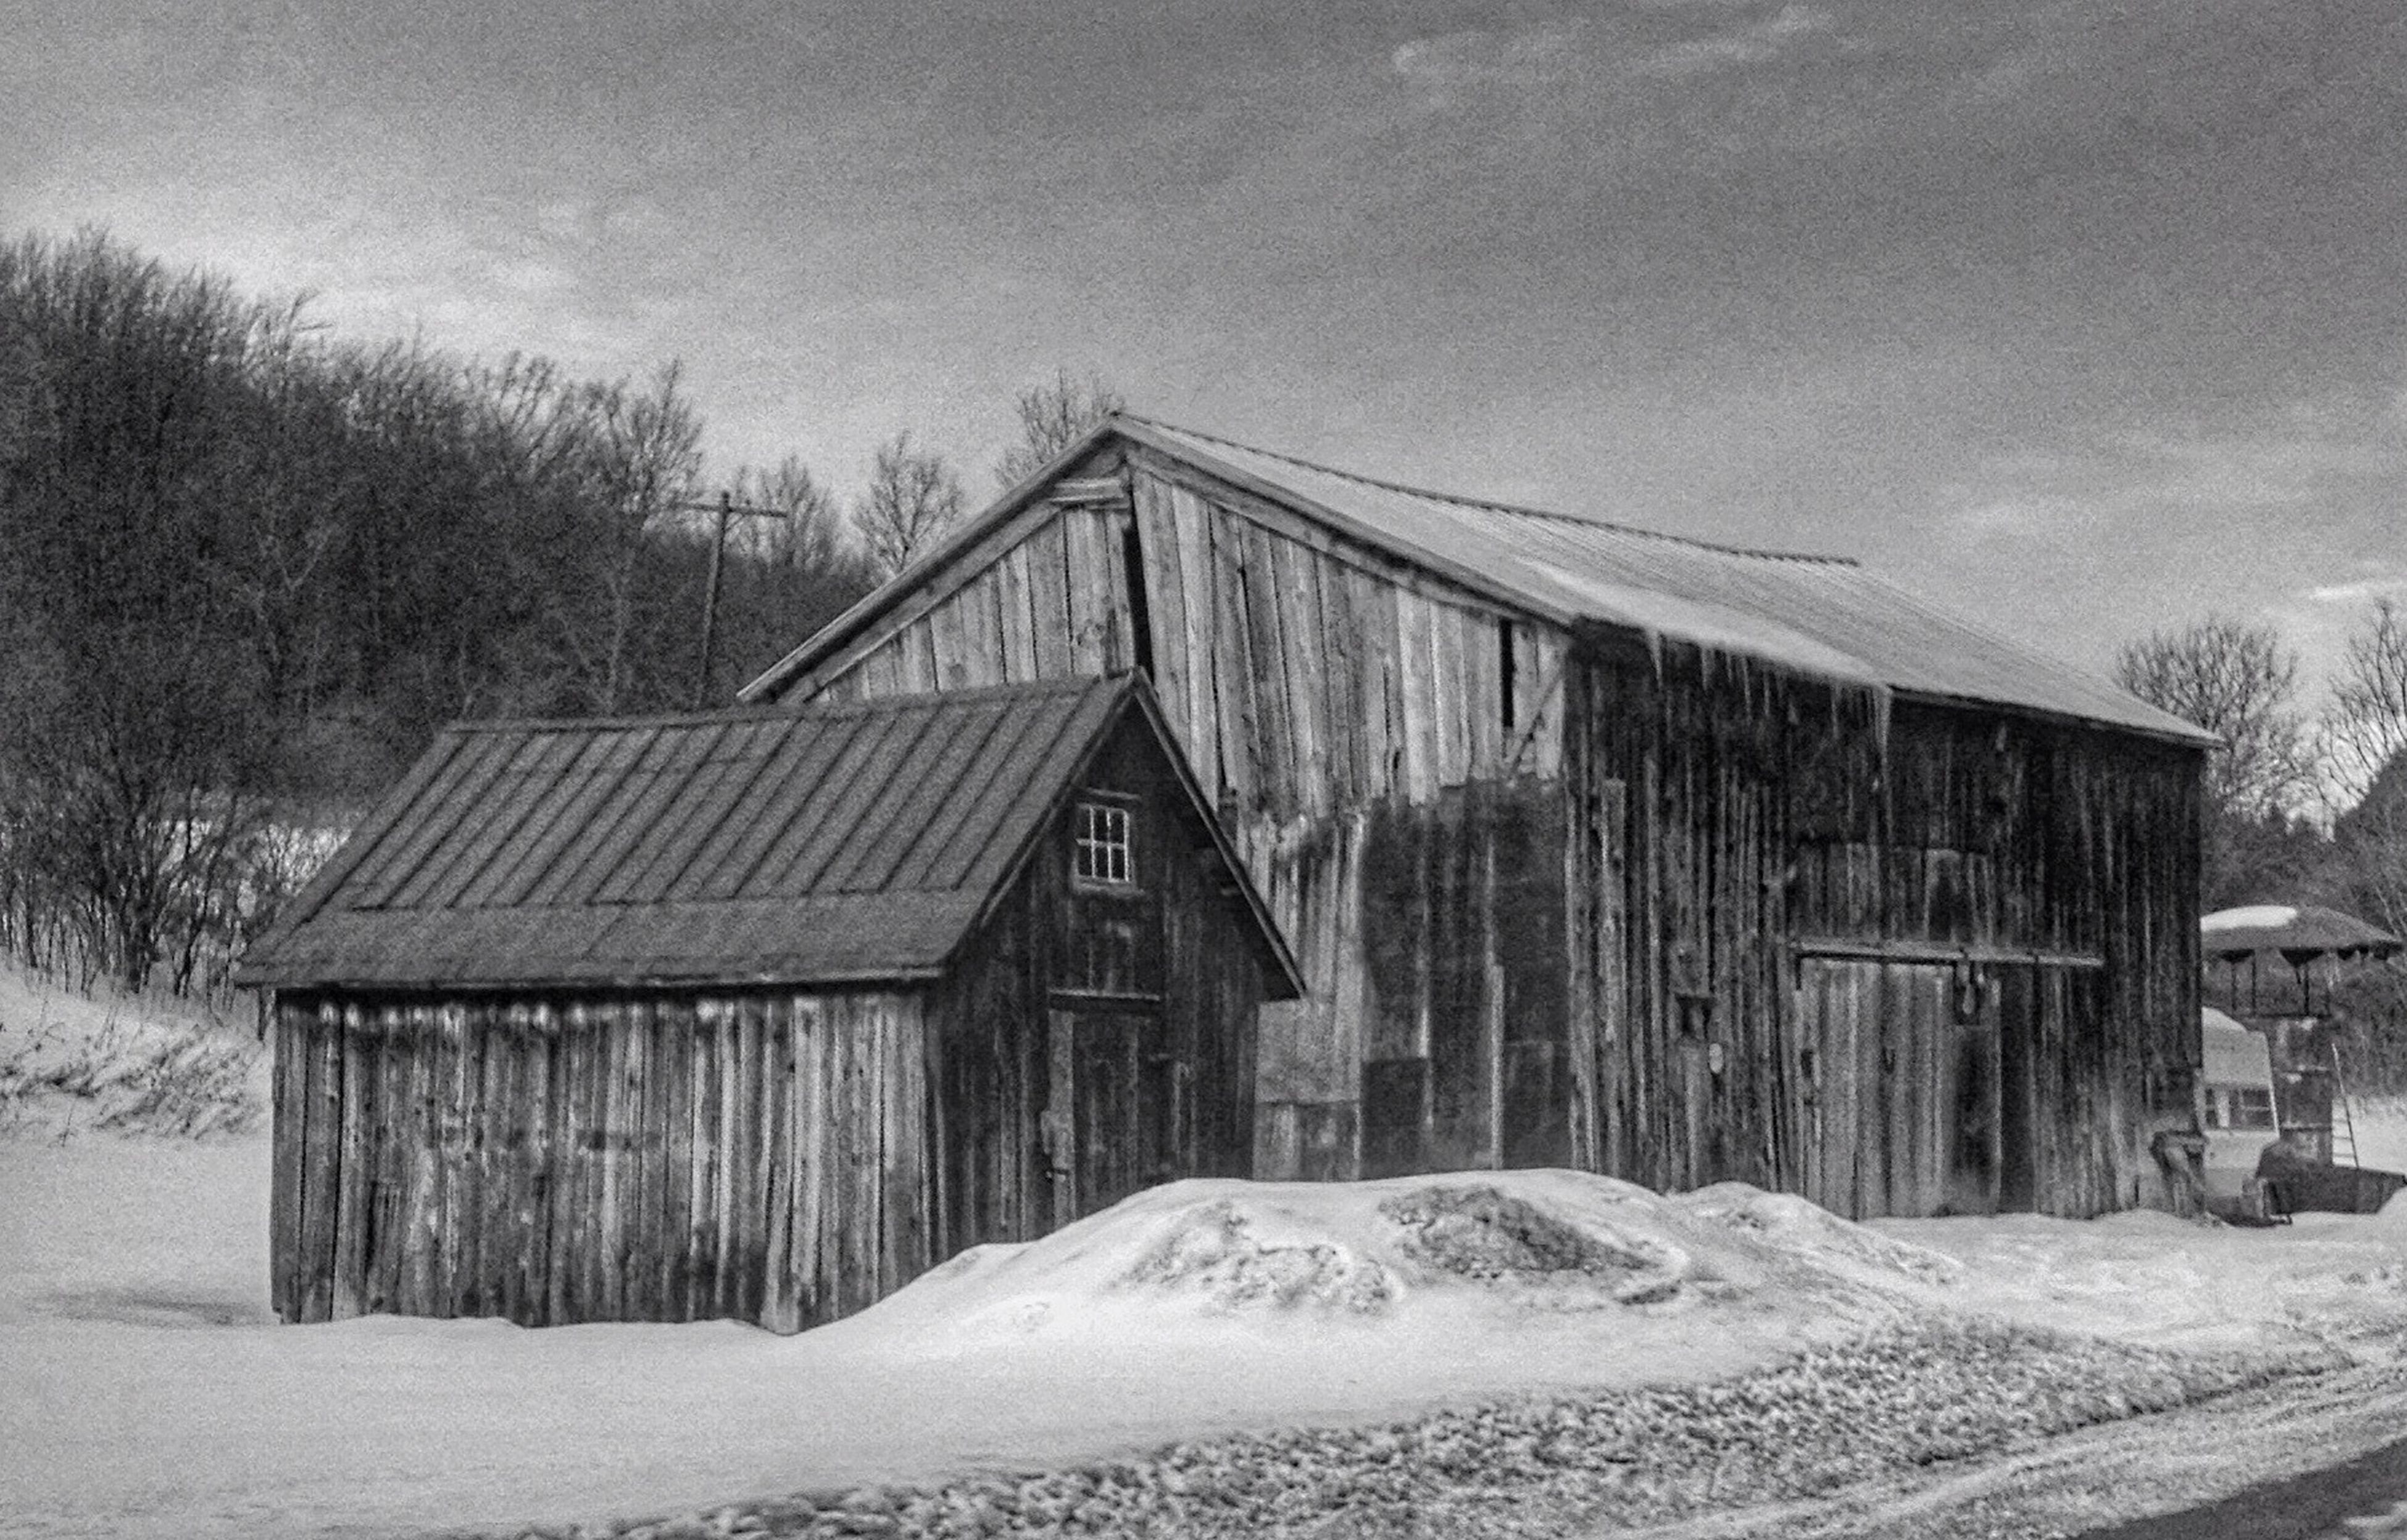 built structure, architecture, cold temperature, abandoned, outdoors, snow, winter, no people, day, barn, building exterior, nature, sky, tree